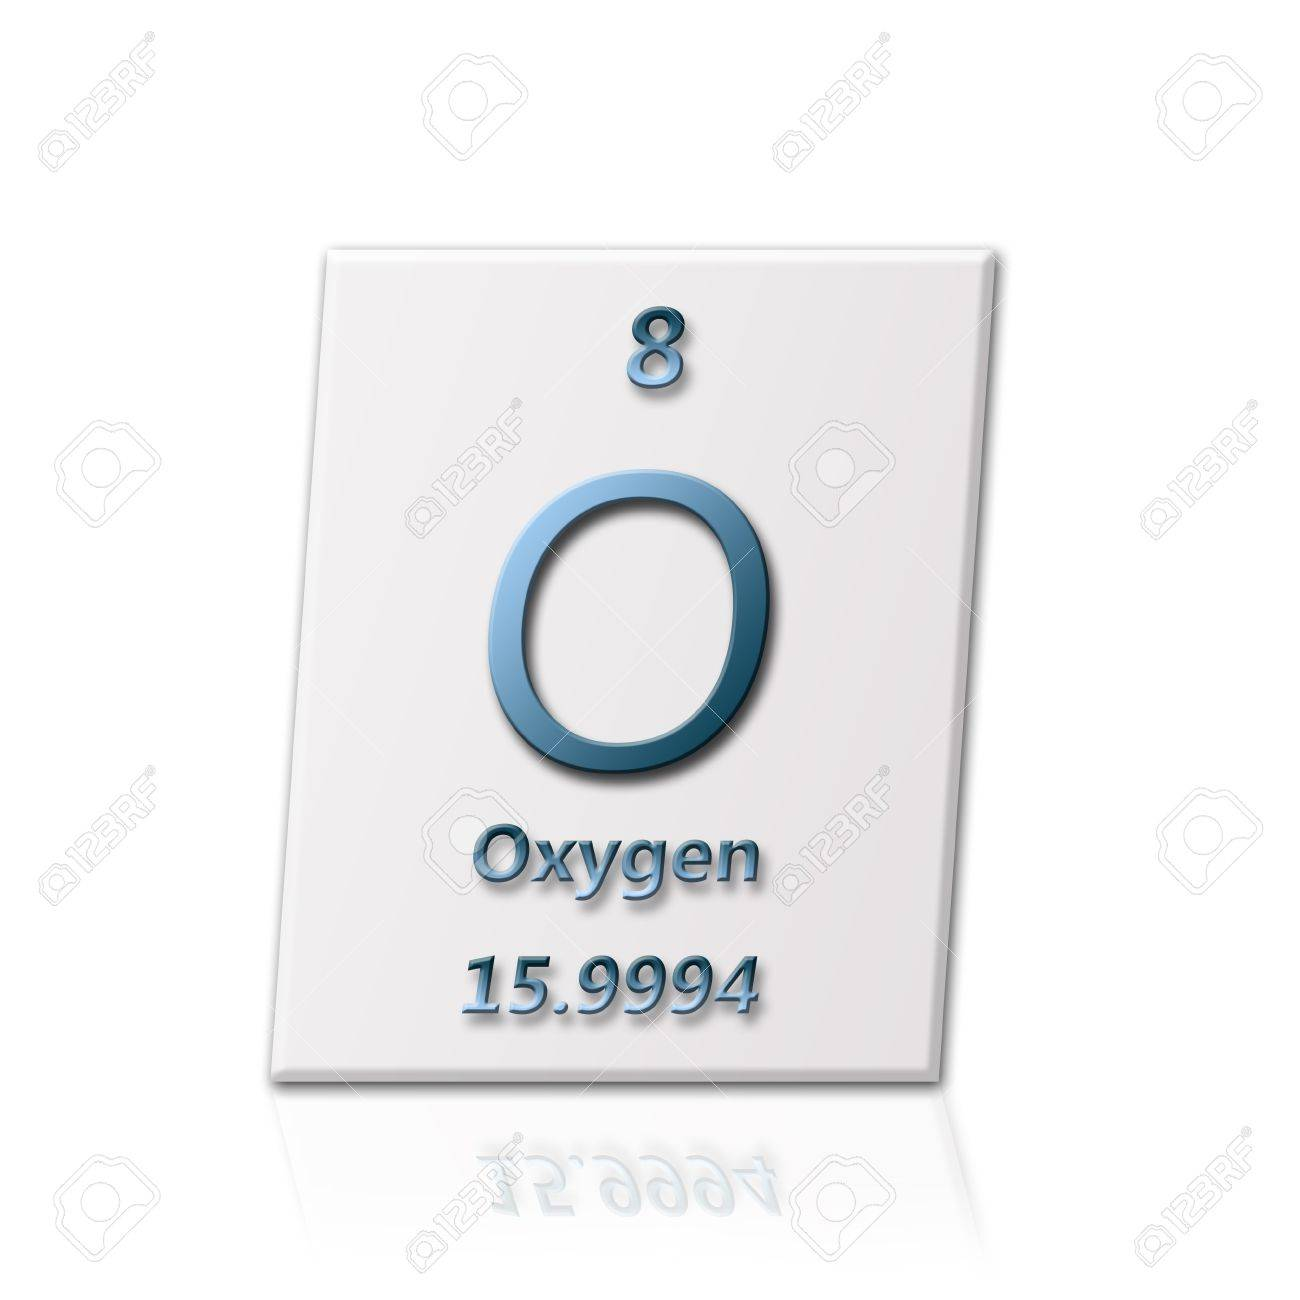 There is a chemical element Oxygen with all informatin about it Stock Photo - 7613145